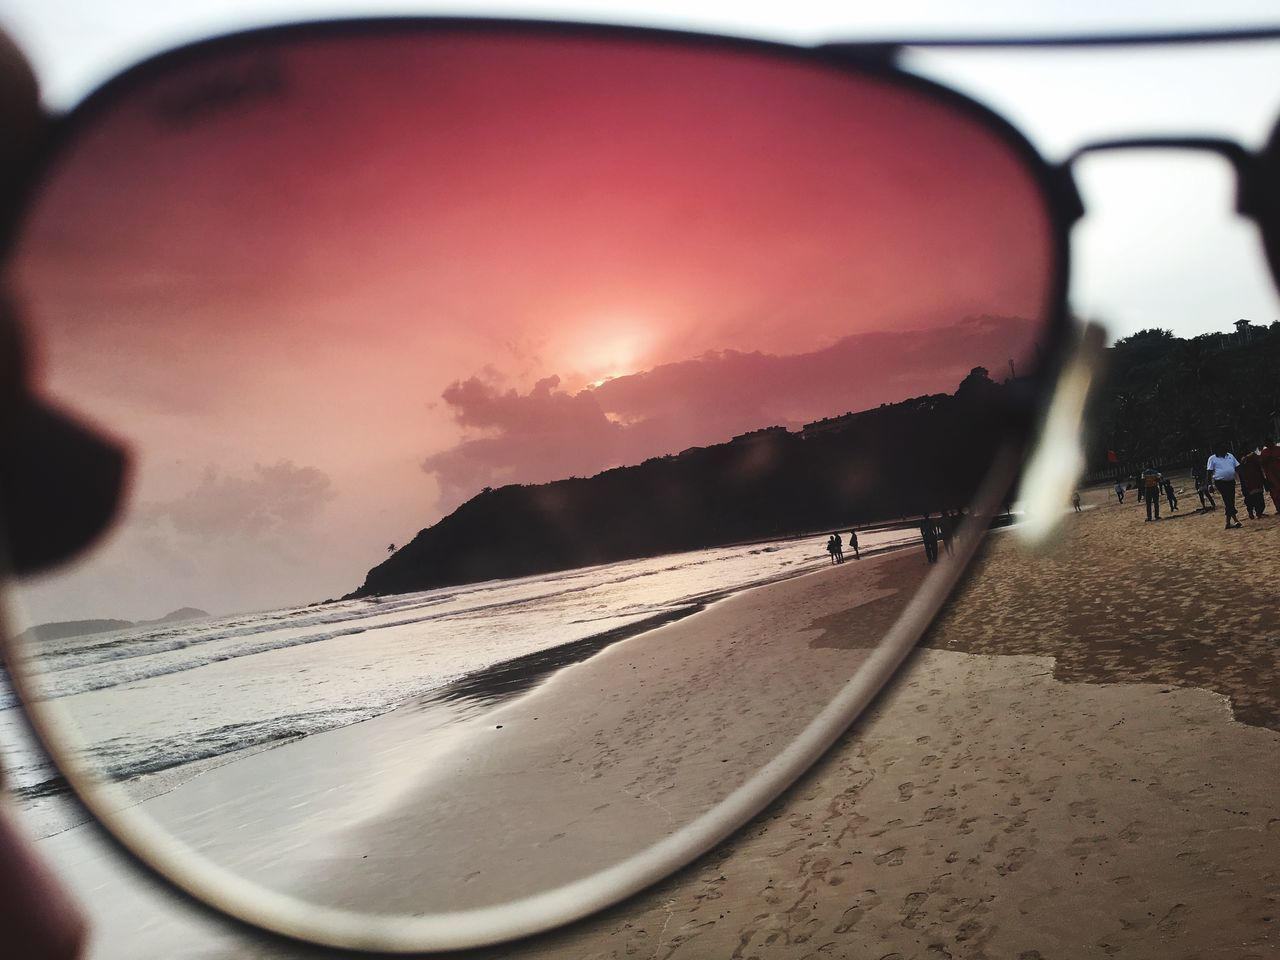 sky, beach, land, glasses, beauty in nature, sunset, sand, reflection, water, sea, sunglasses, nature, incidental people, close-up, scenics - nature, tranquility, tranquil scene, glass - material, fashion, outdoors, personal accessory